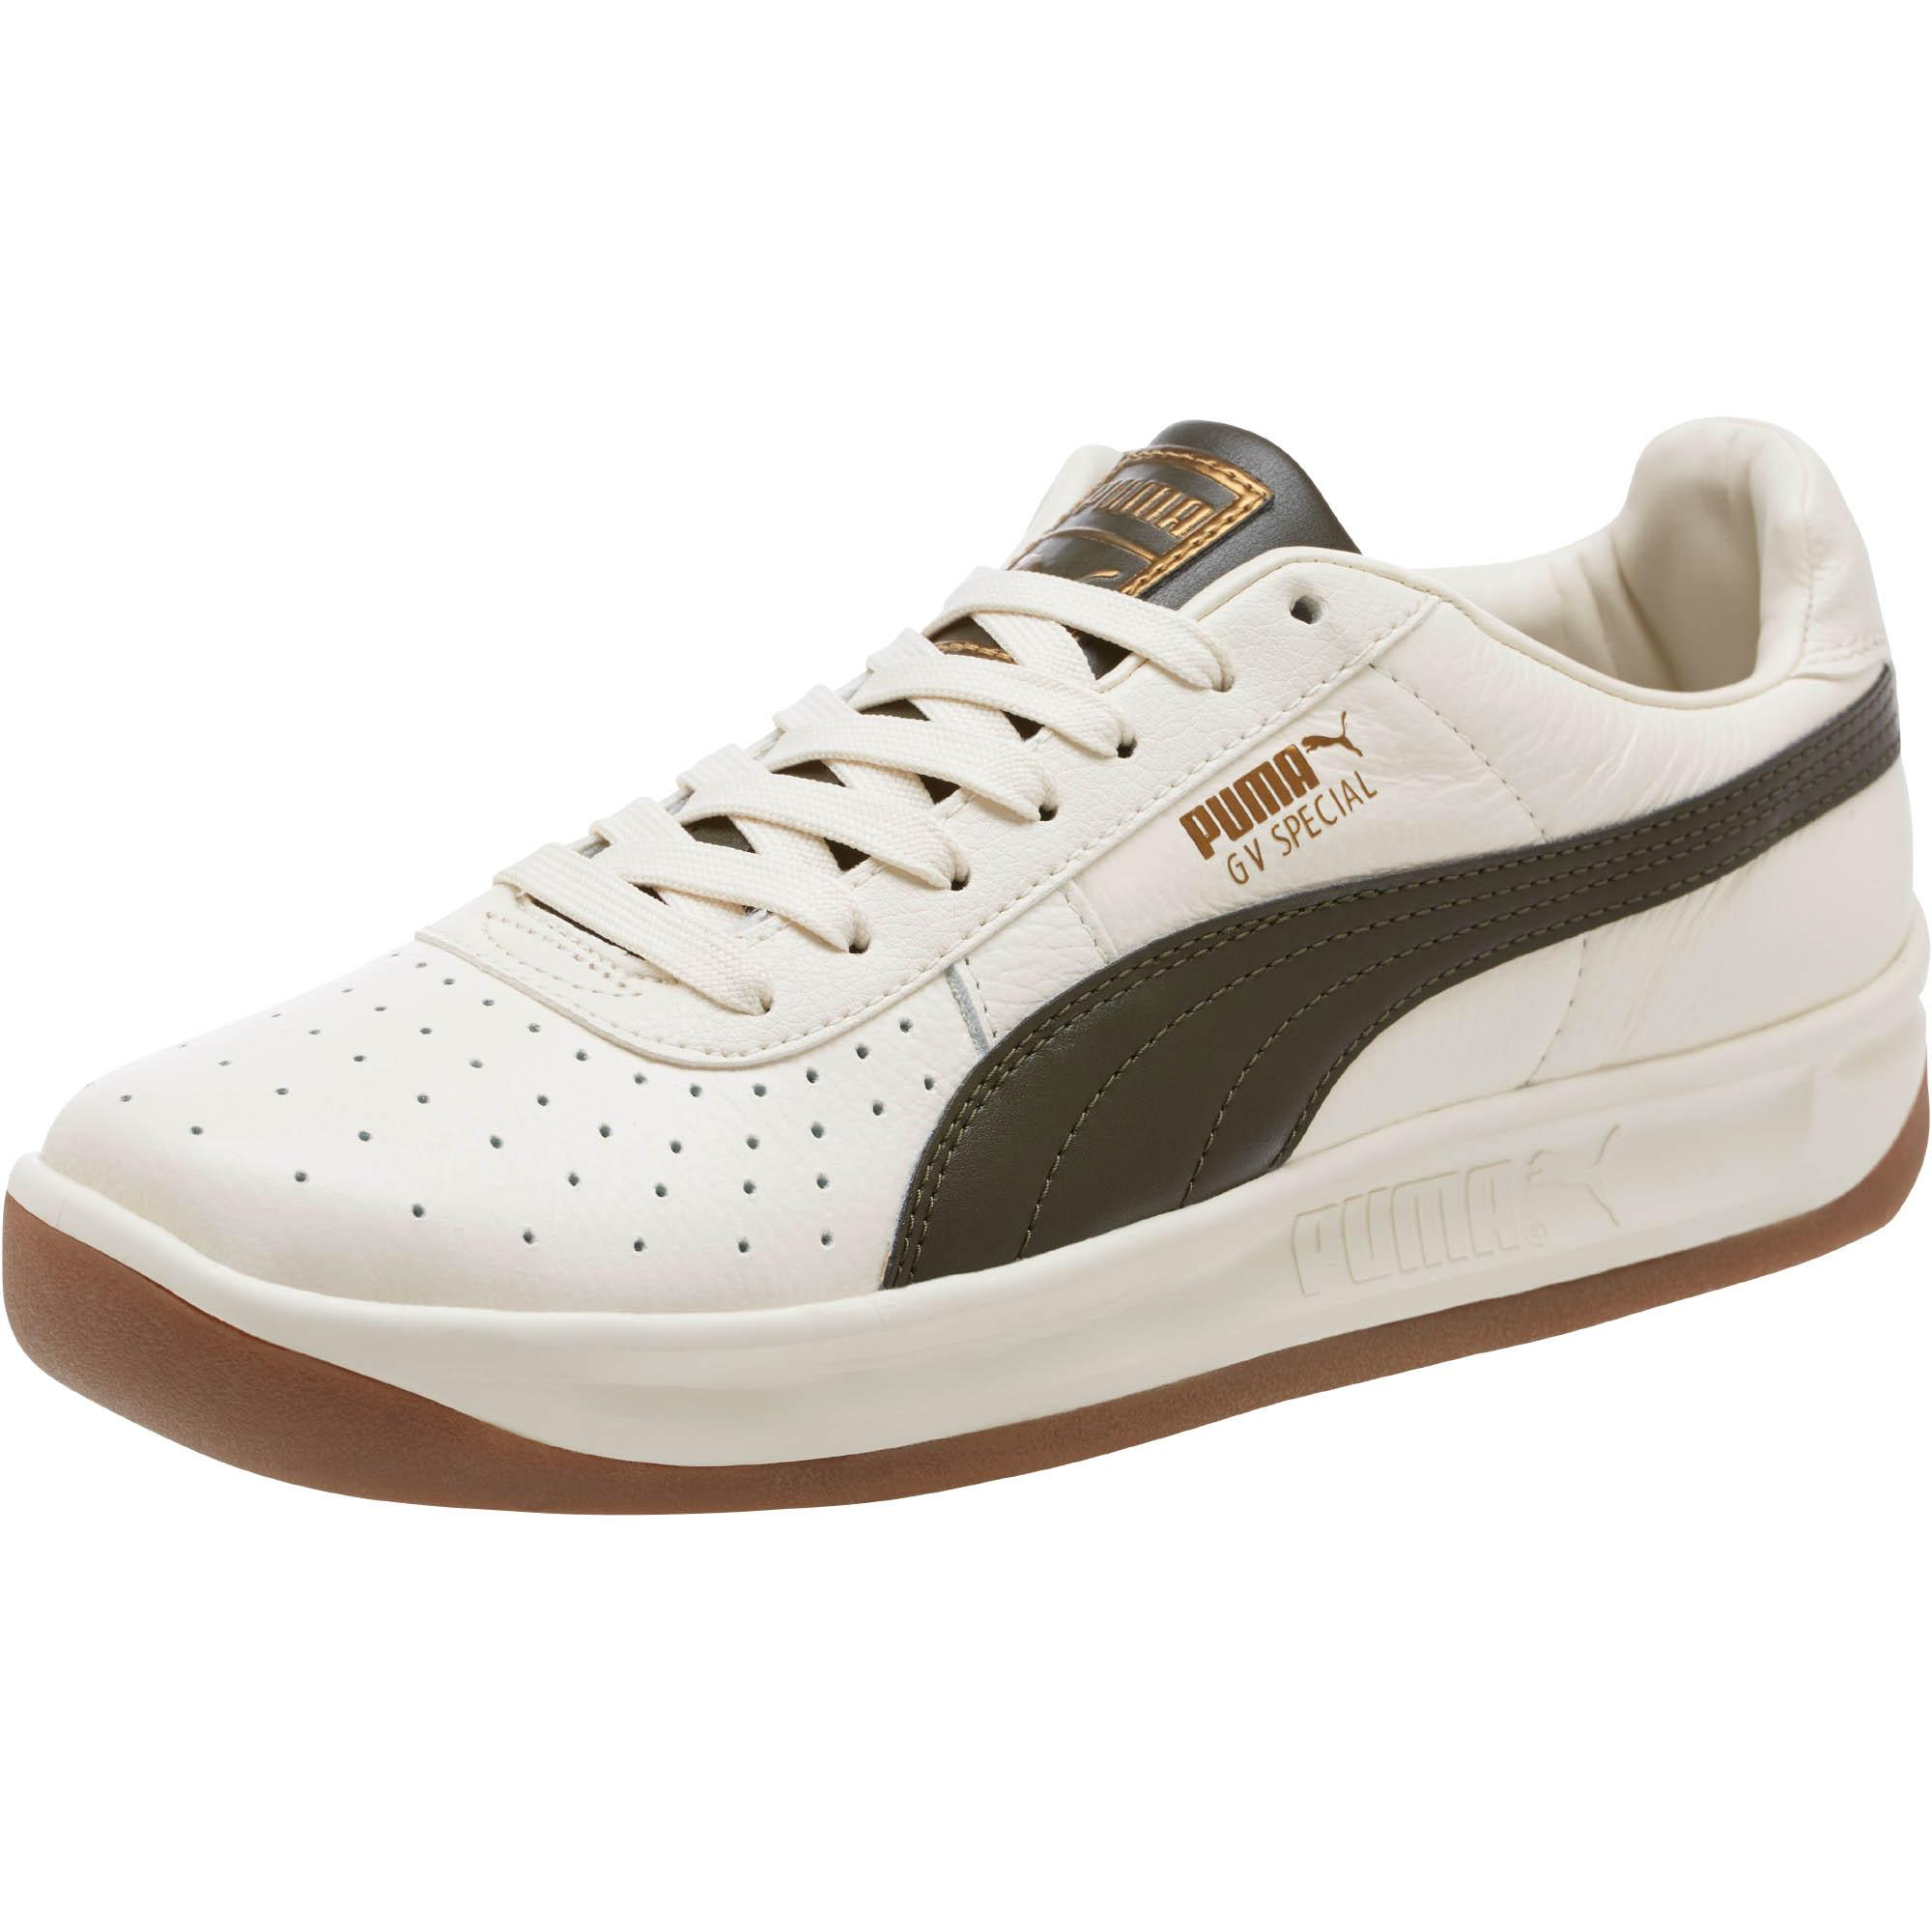 113a8d53c2b Lyst - PUMA Gv Special + Nc Sneakers in White for Men